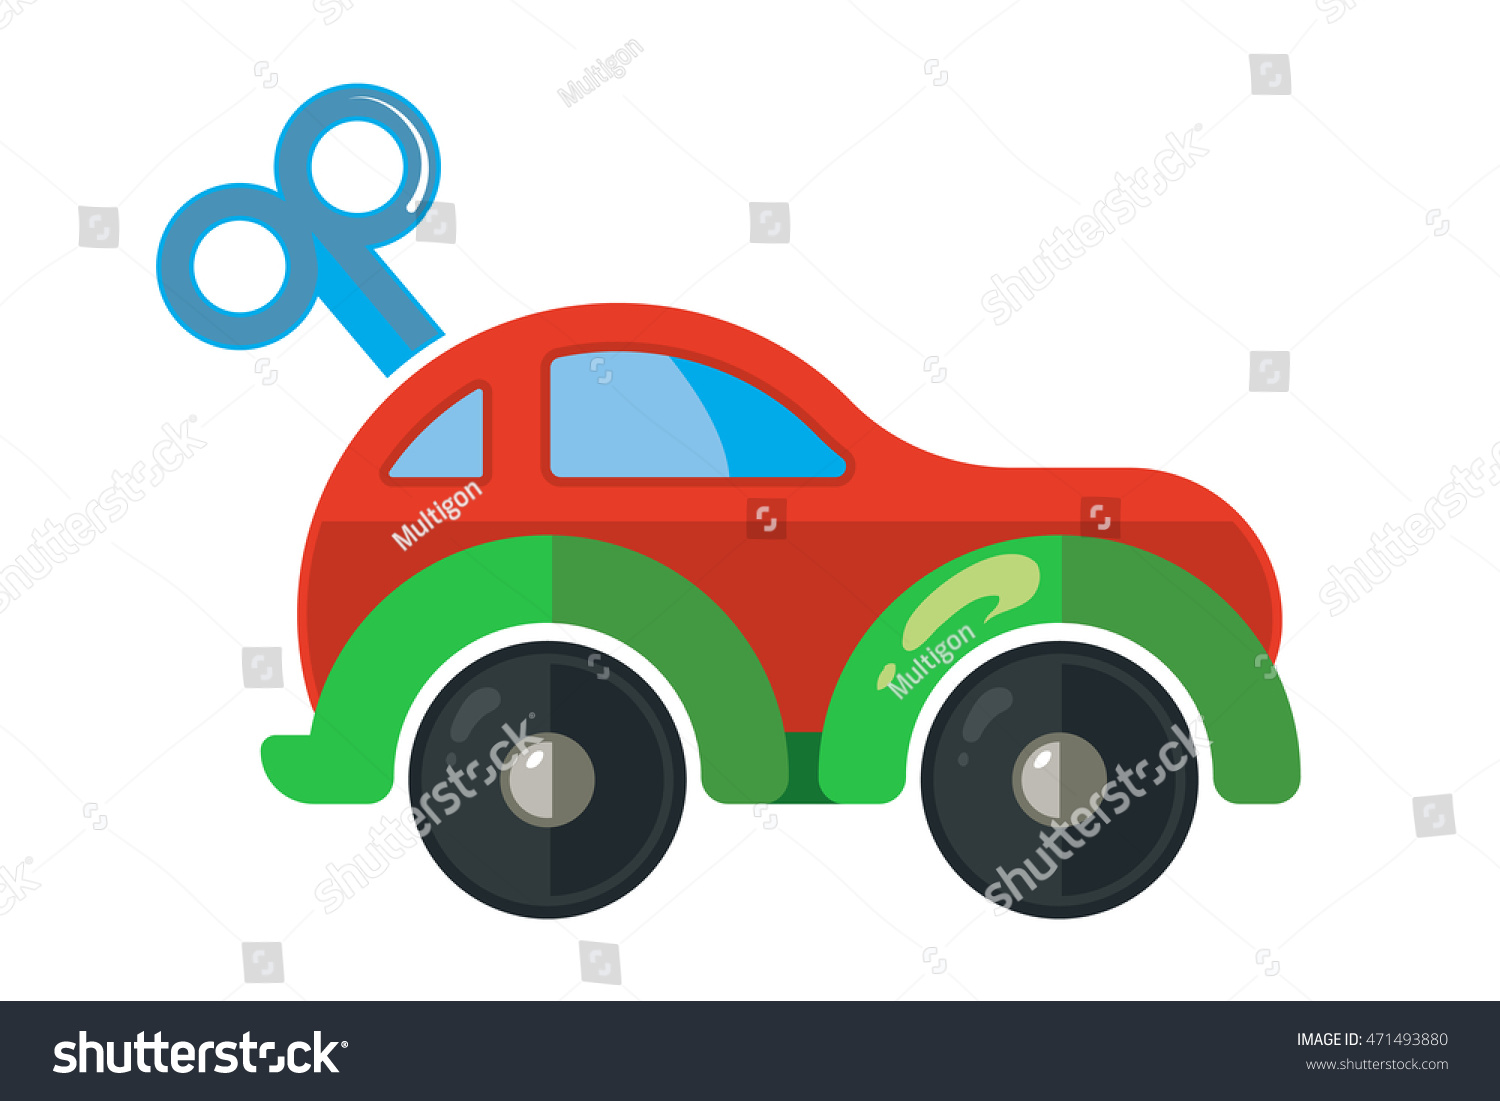 vector illustration of clockwork little car for kids isolate on white background icon picture made